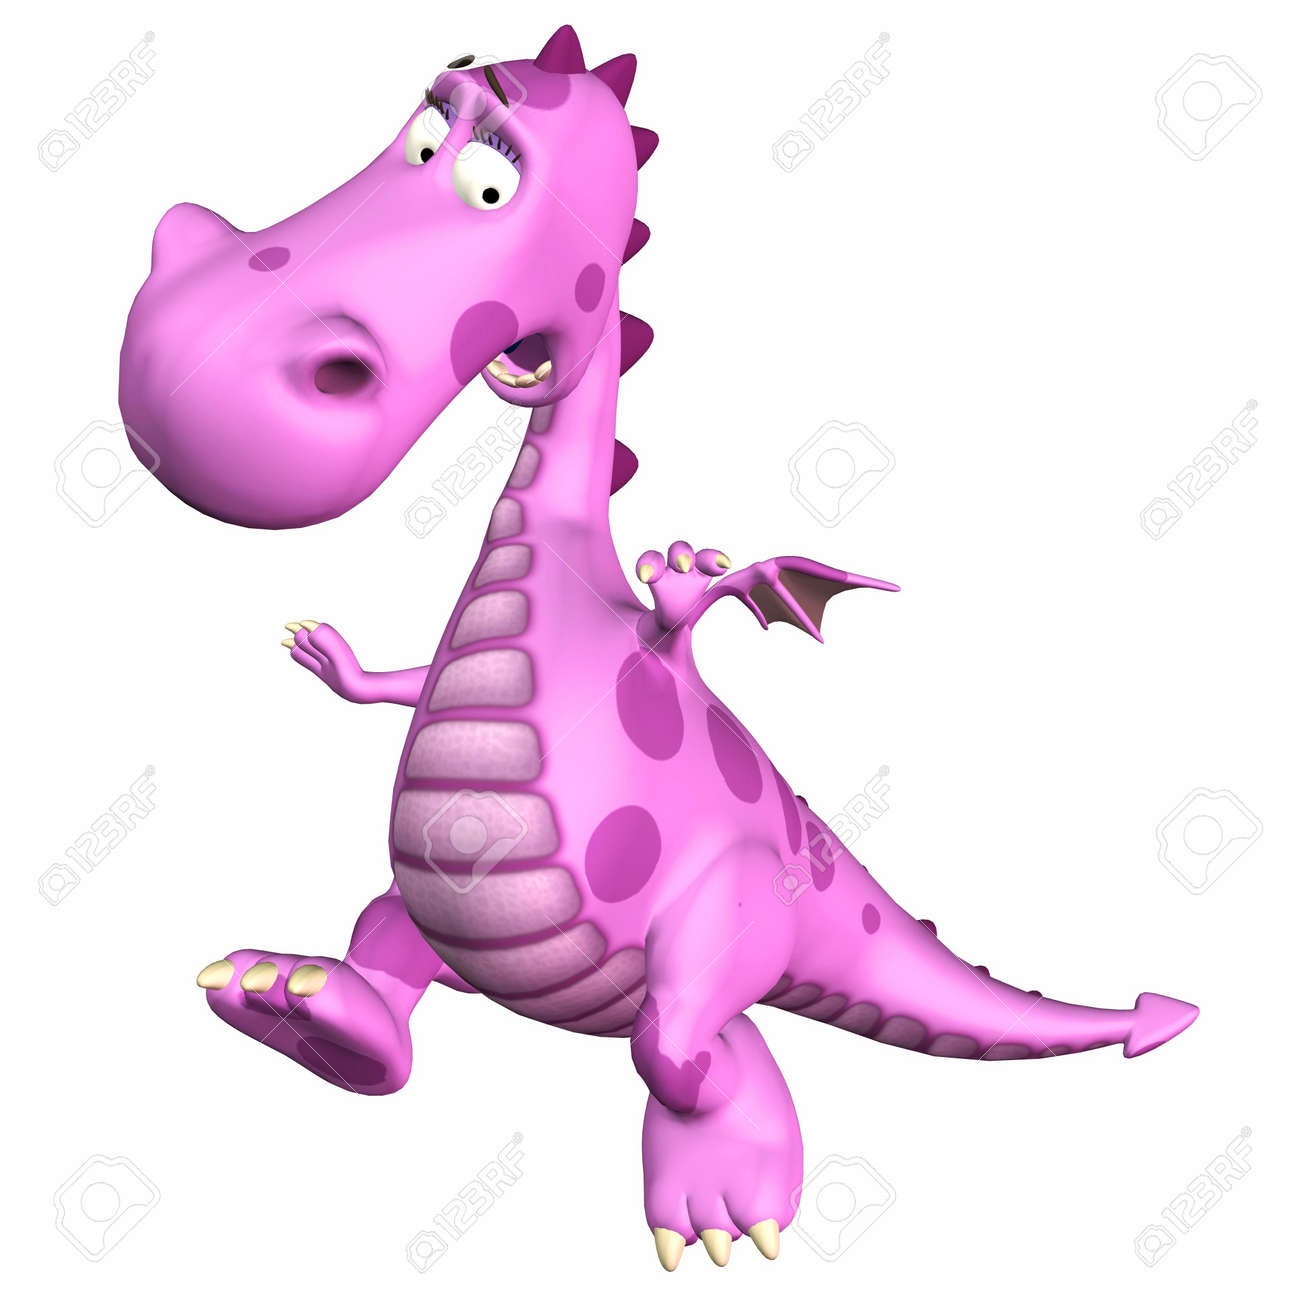 Illustration of a scared pink dragon isolated on a white backgorund Stock Illustration - 12675166